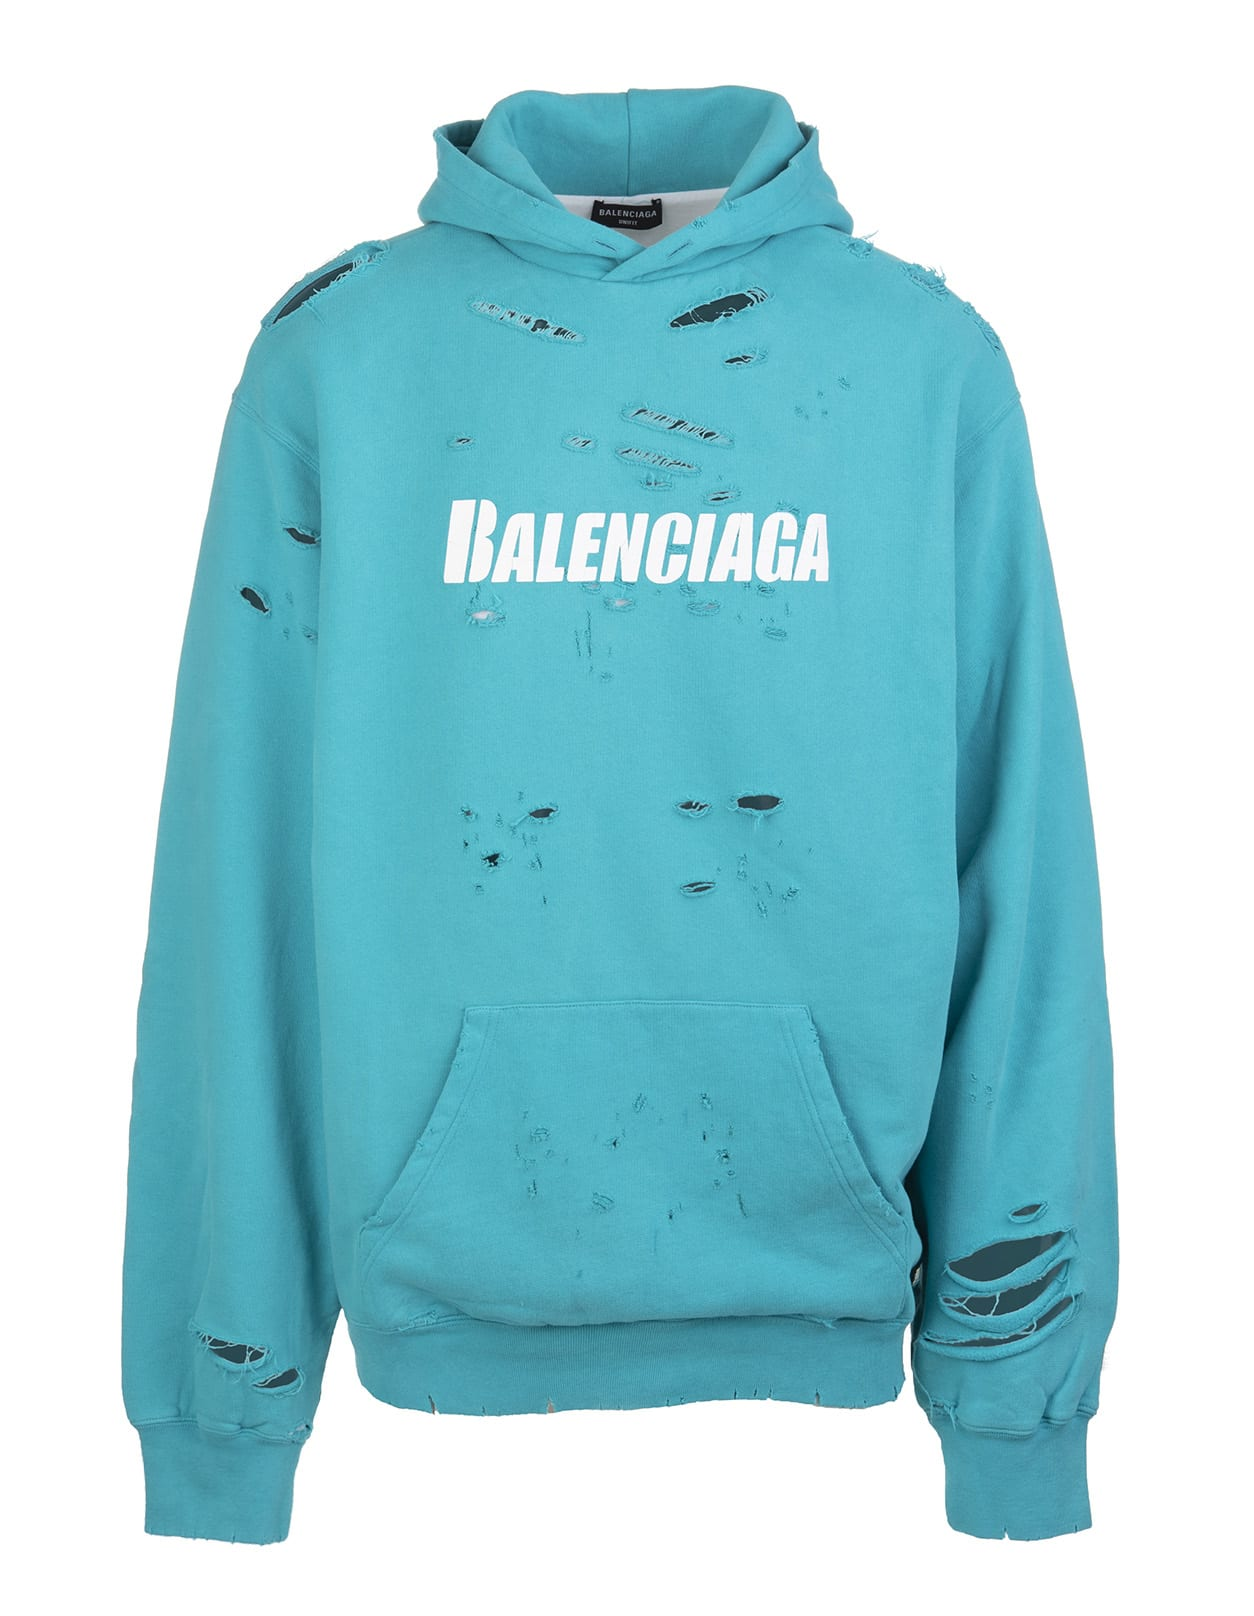 Balenciaga Cottons UNISEX TURQUOISE CAPS DESTROYED HOODIE